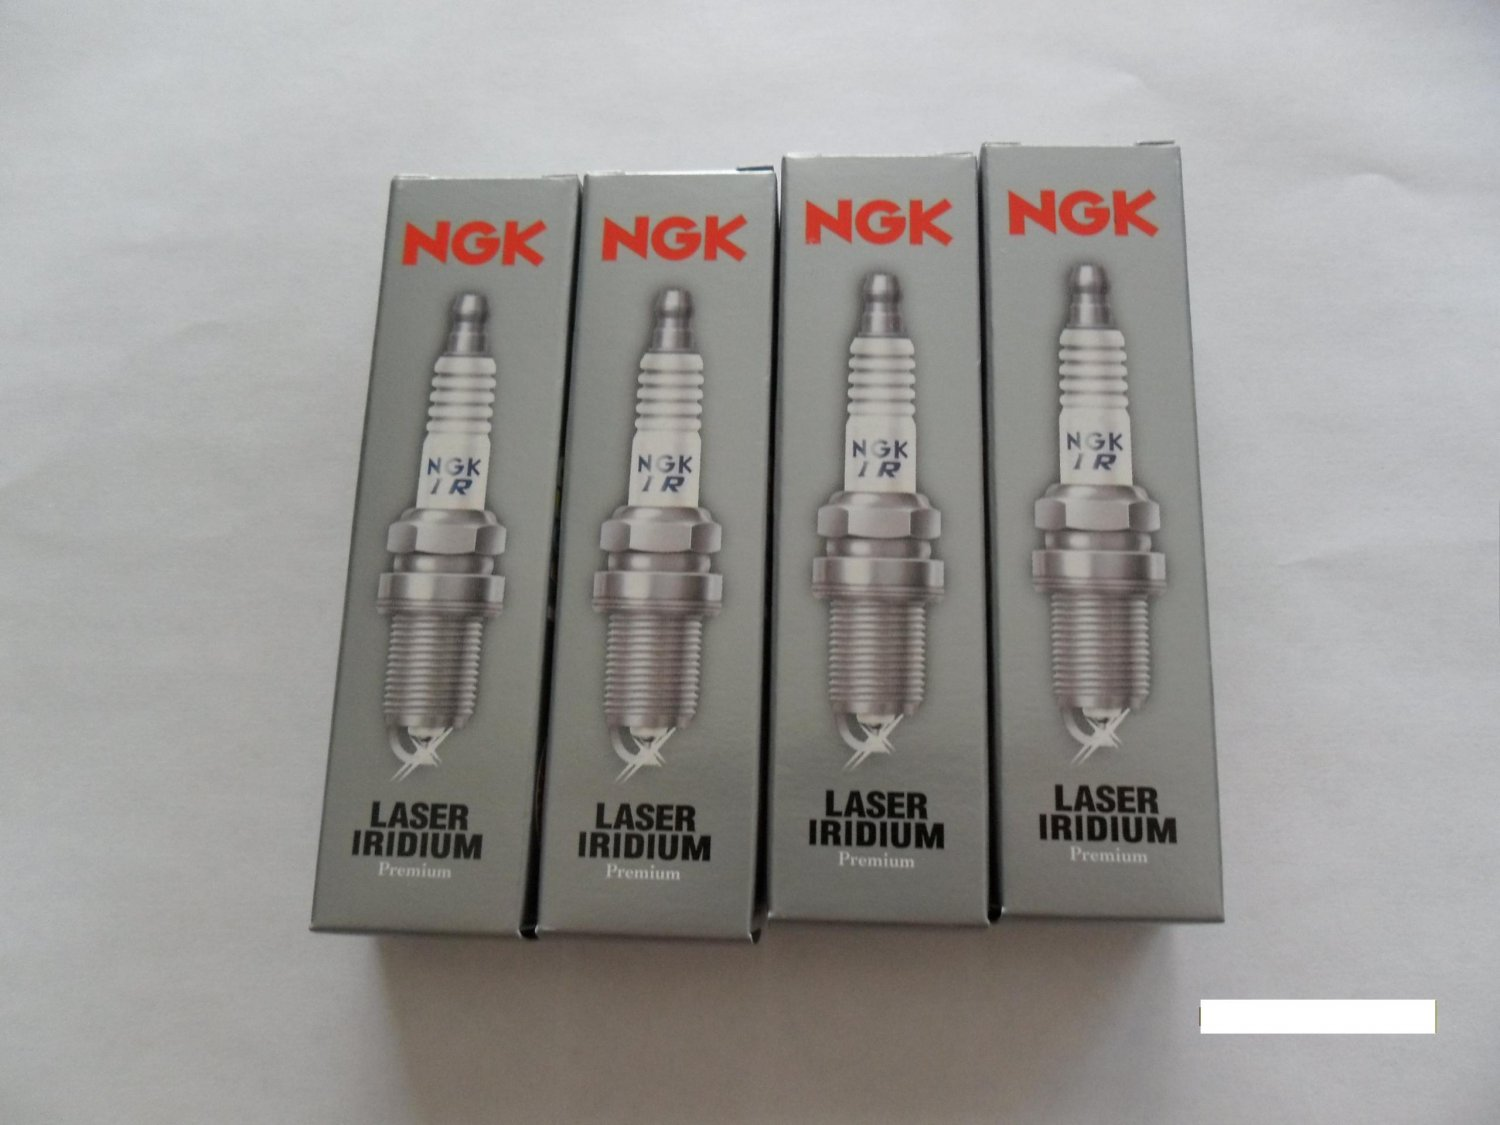 4 ifr6t 11 4589 ngk laser iridium premium spark plugs. Black Bedroom Furniture Sets. Home Design Ideas